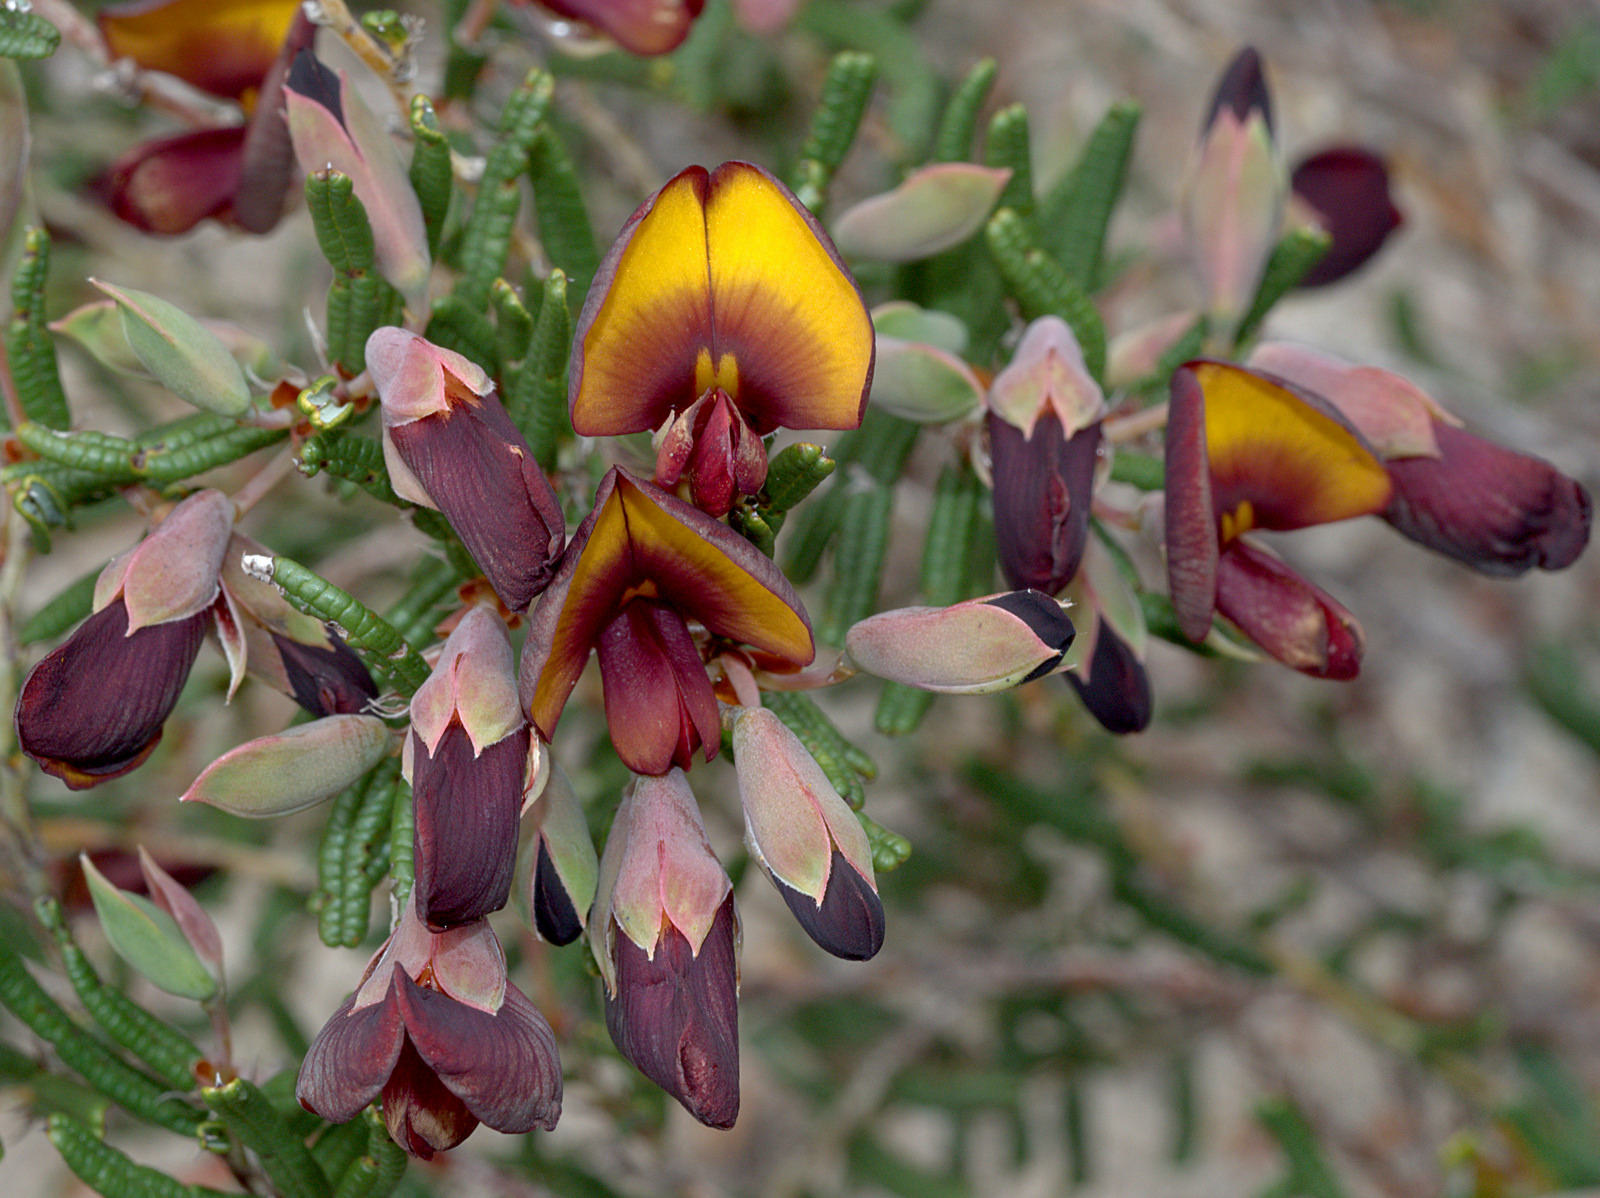 The flowers and flower buds of <i>Bossiaea eriocarpa</i>